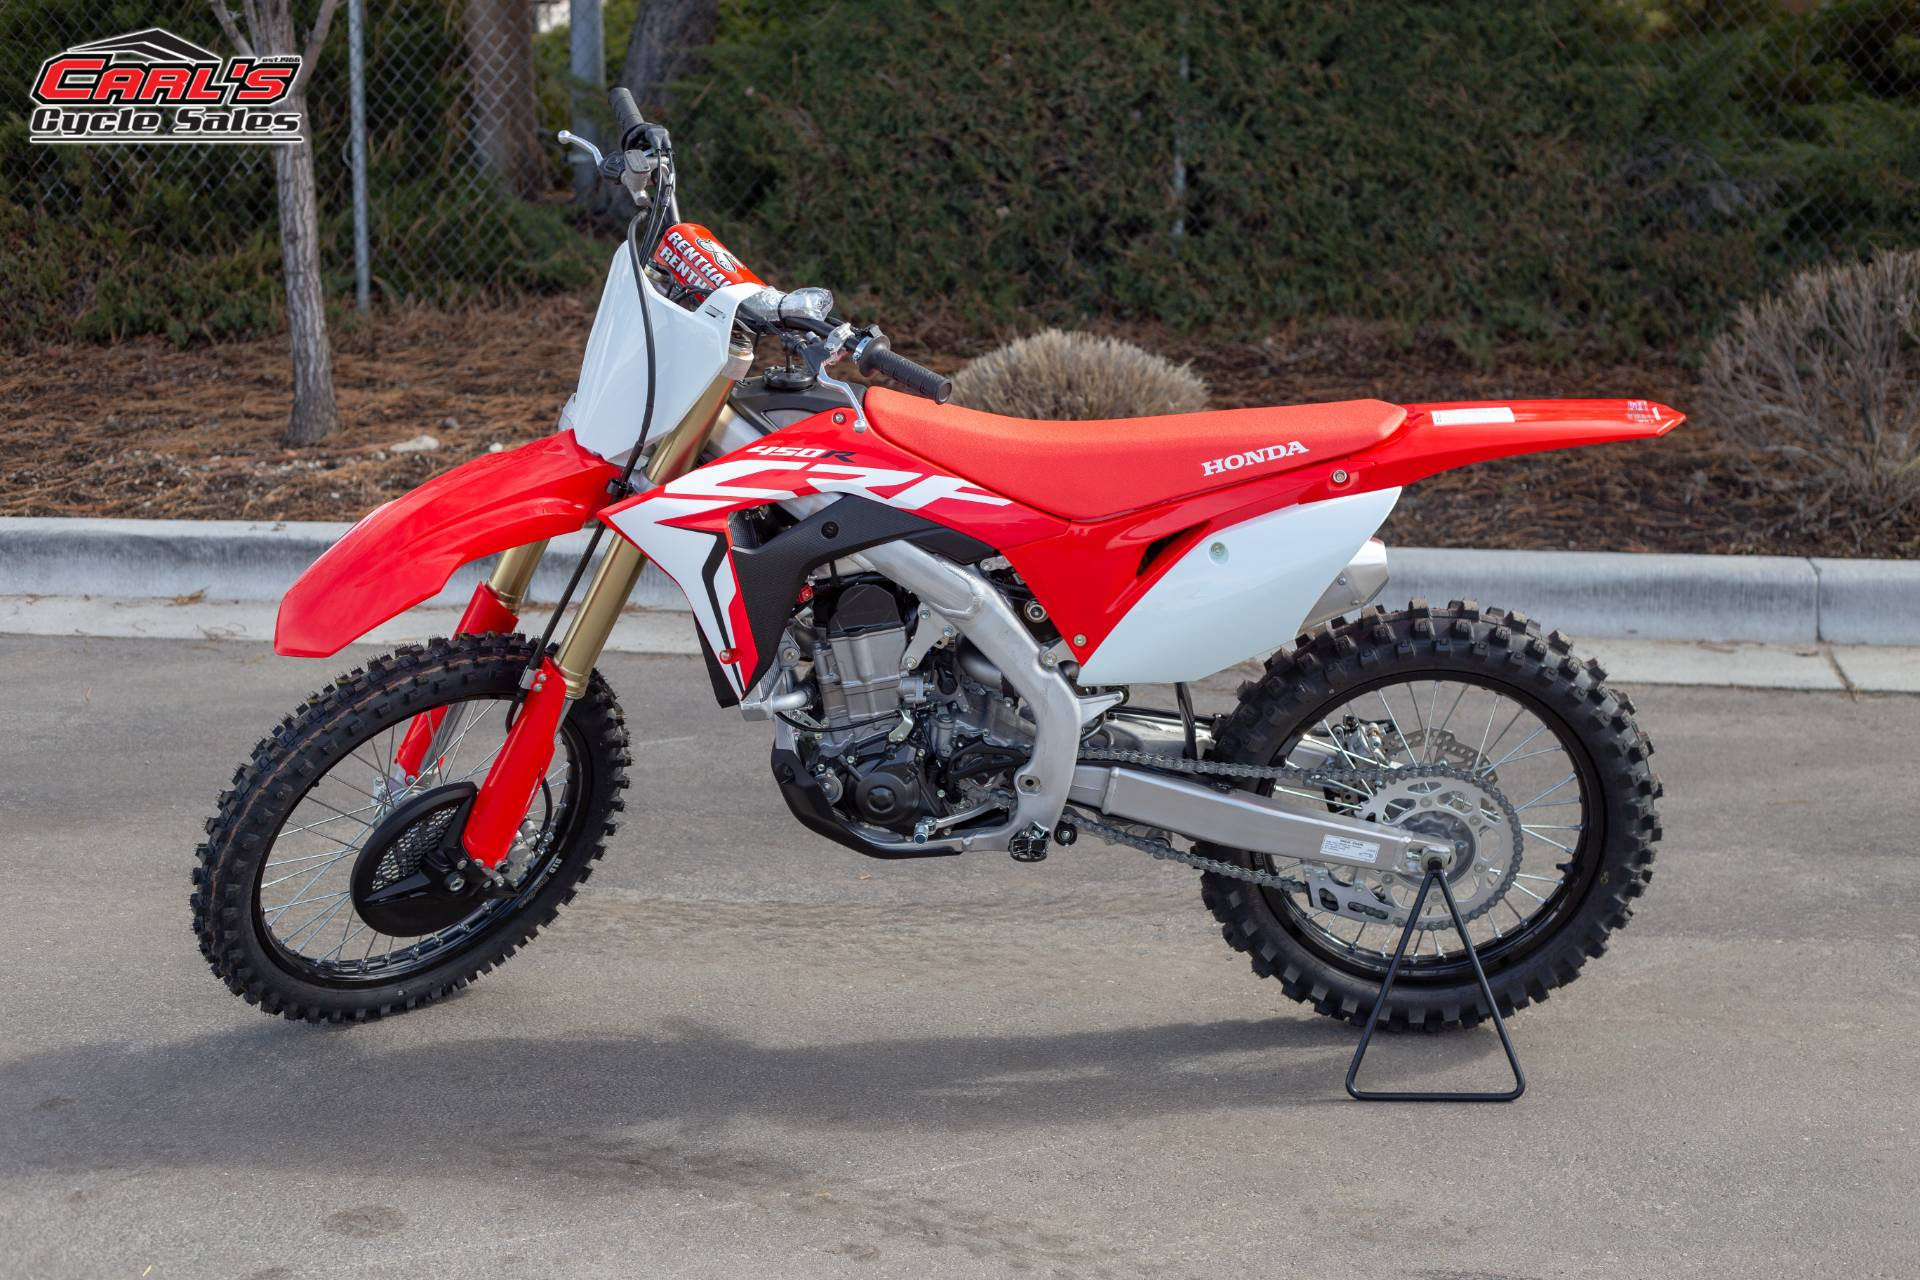 New 2019 Honda Crf450r Motorcycles In Boise Id Red 202662